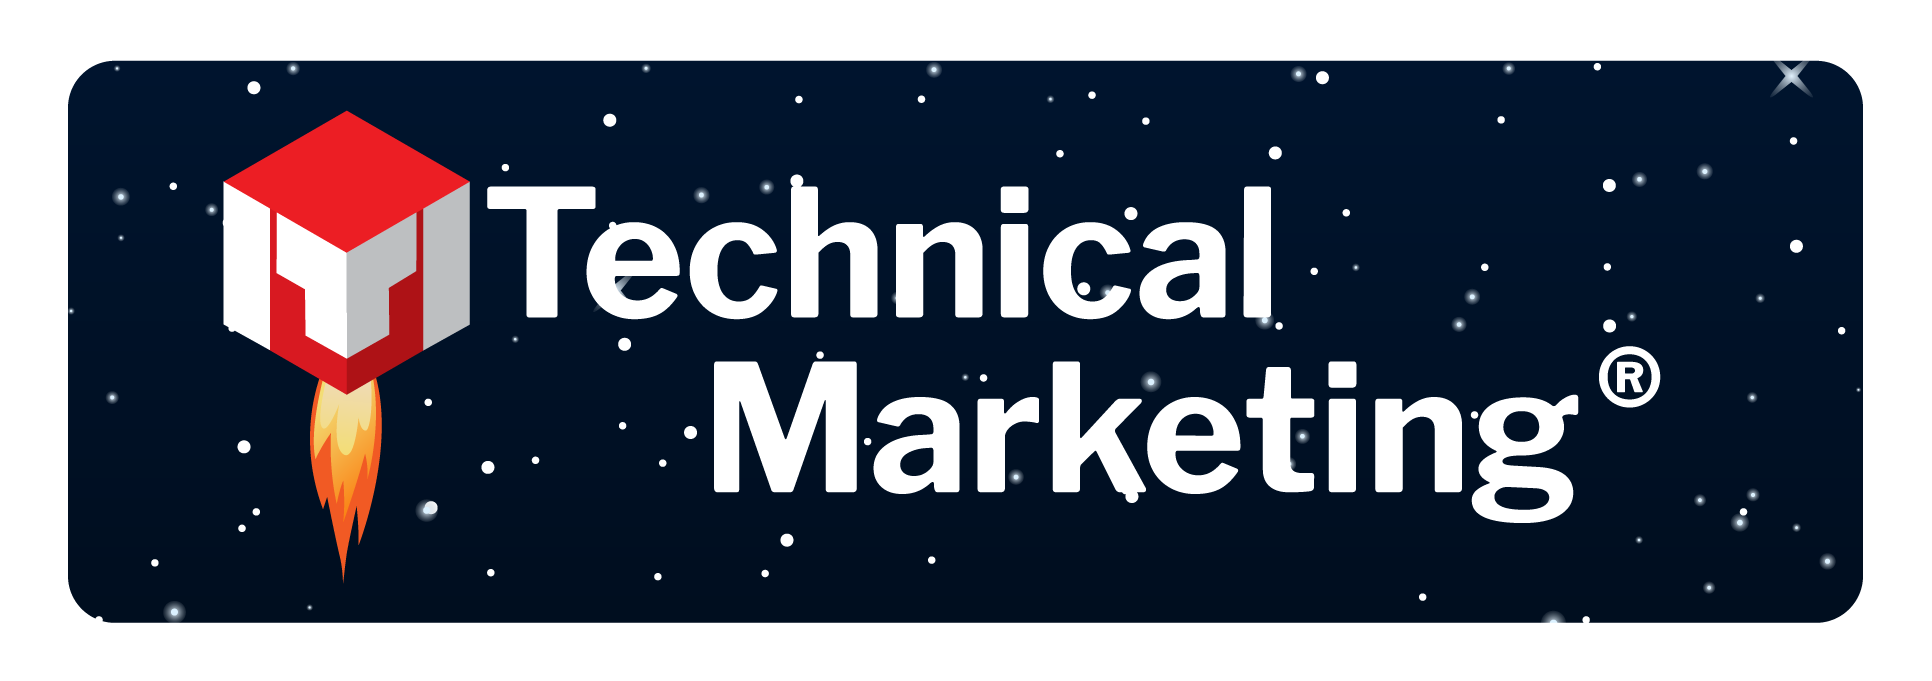 Technical Marketing Org